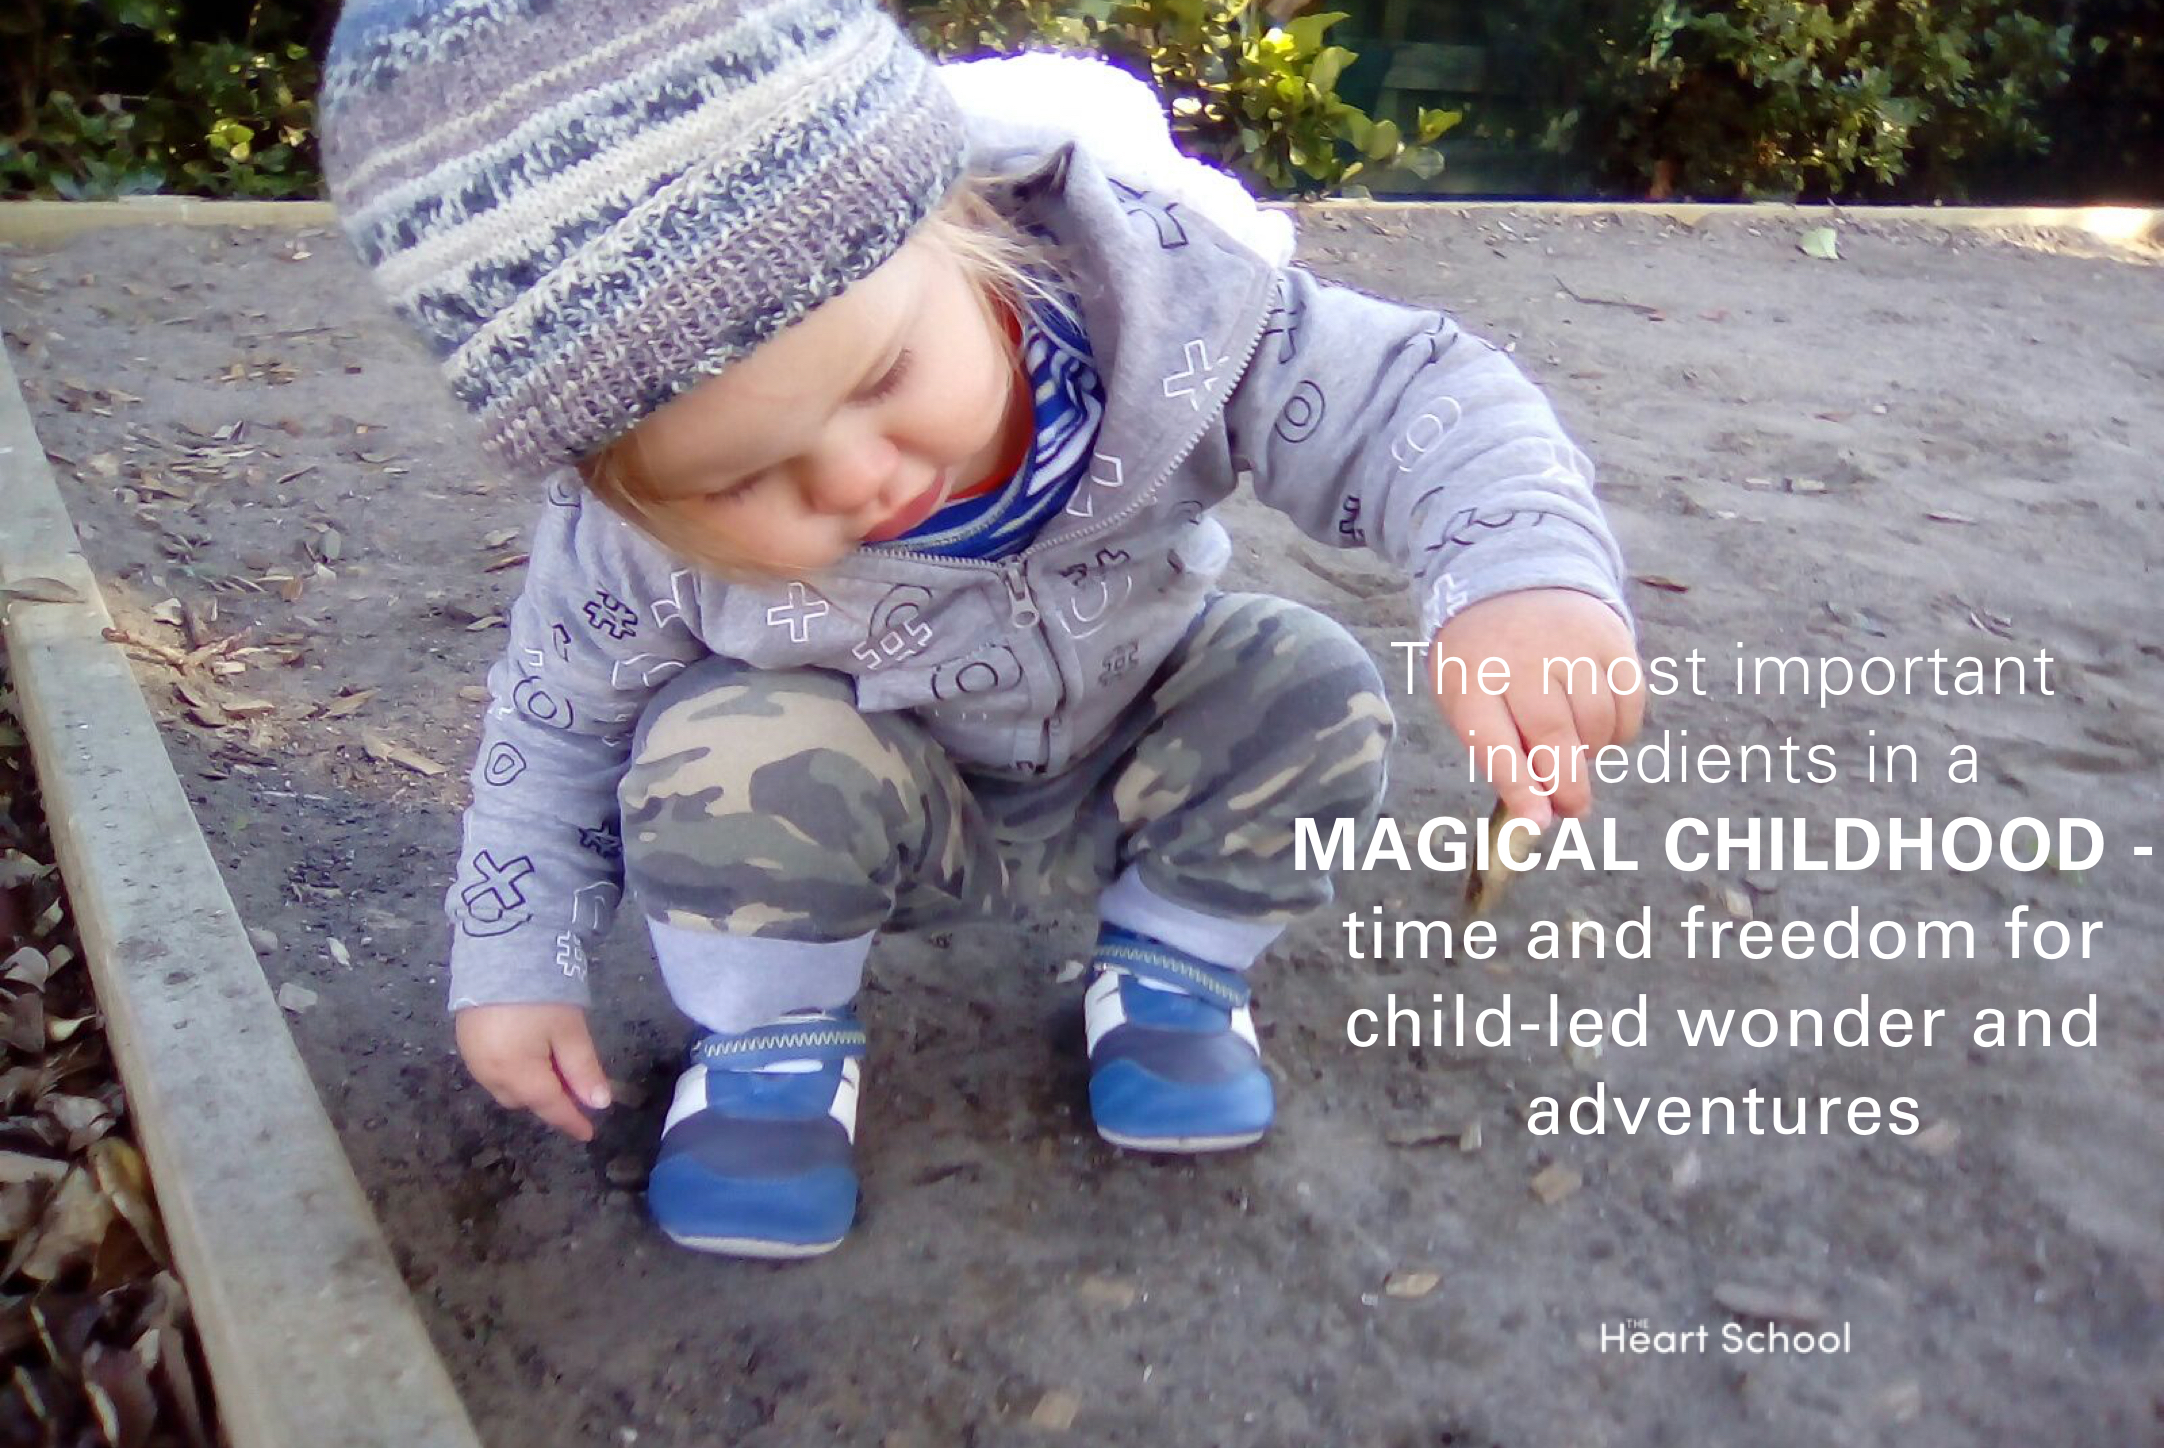 Young children are blessed with a natural curiosity for the world around them. They explore with all their senses, ask questions and observe. They look for connections and relationships between what they already know and what they are discovering for the first time.